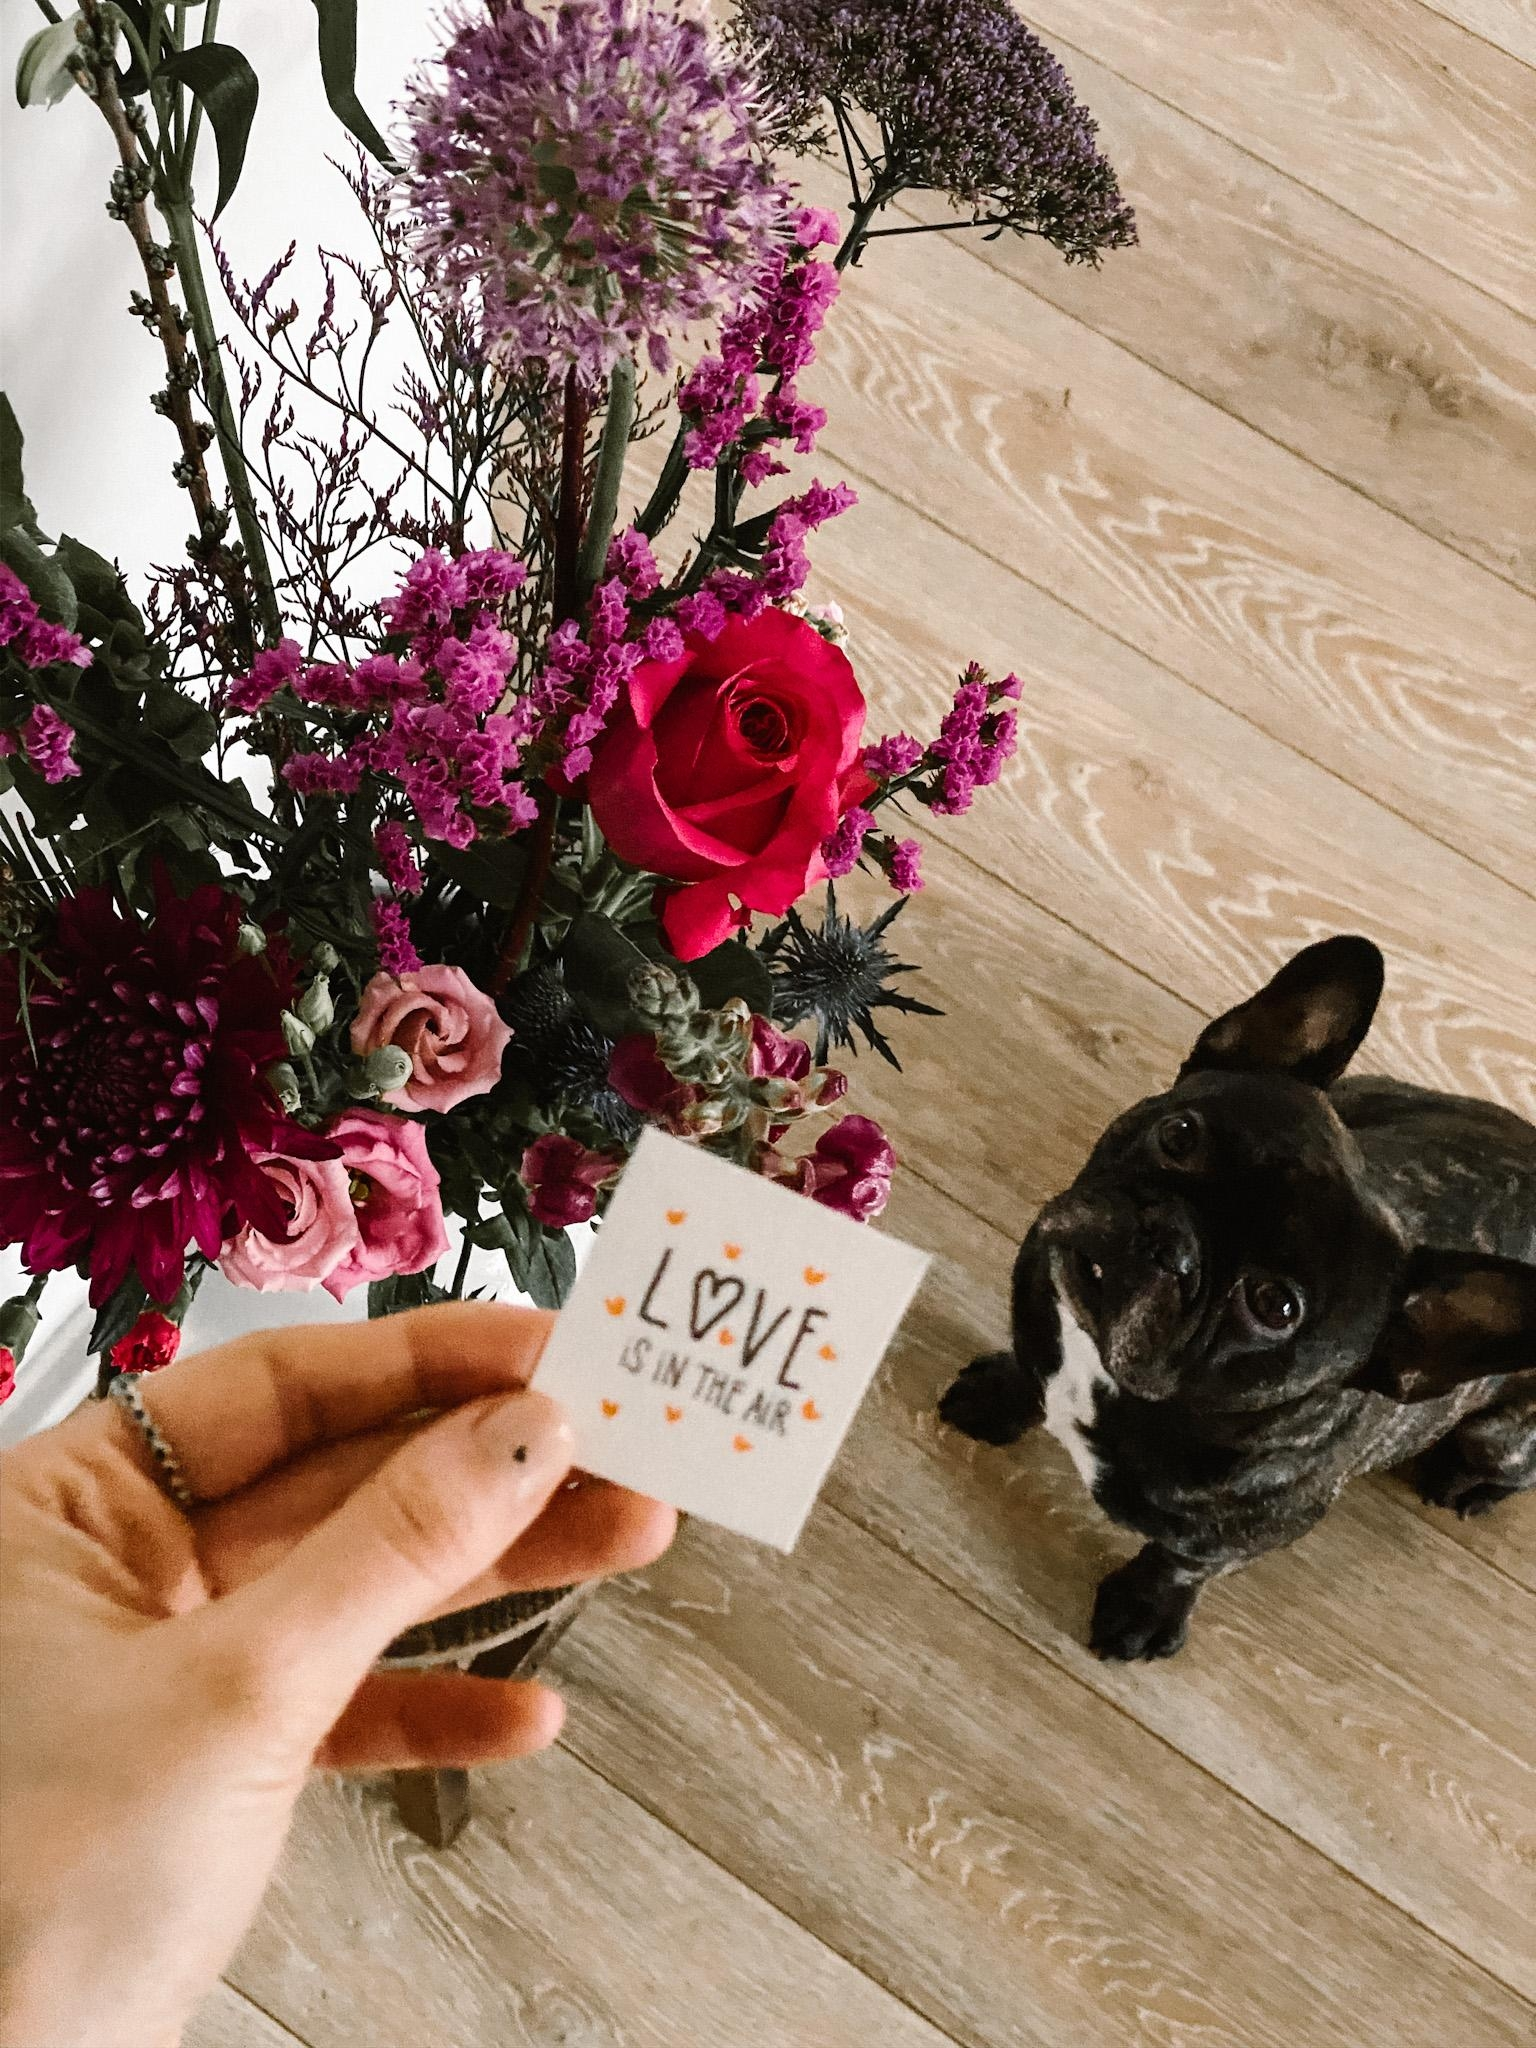 happy valentine's day, darling ♥️🐶